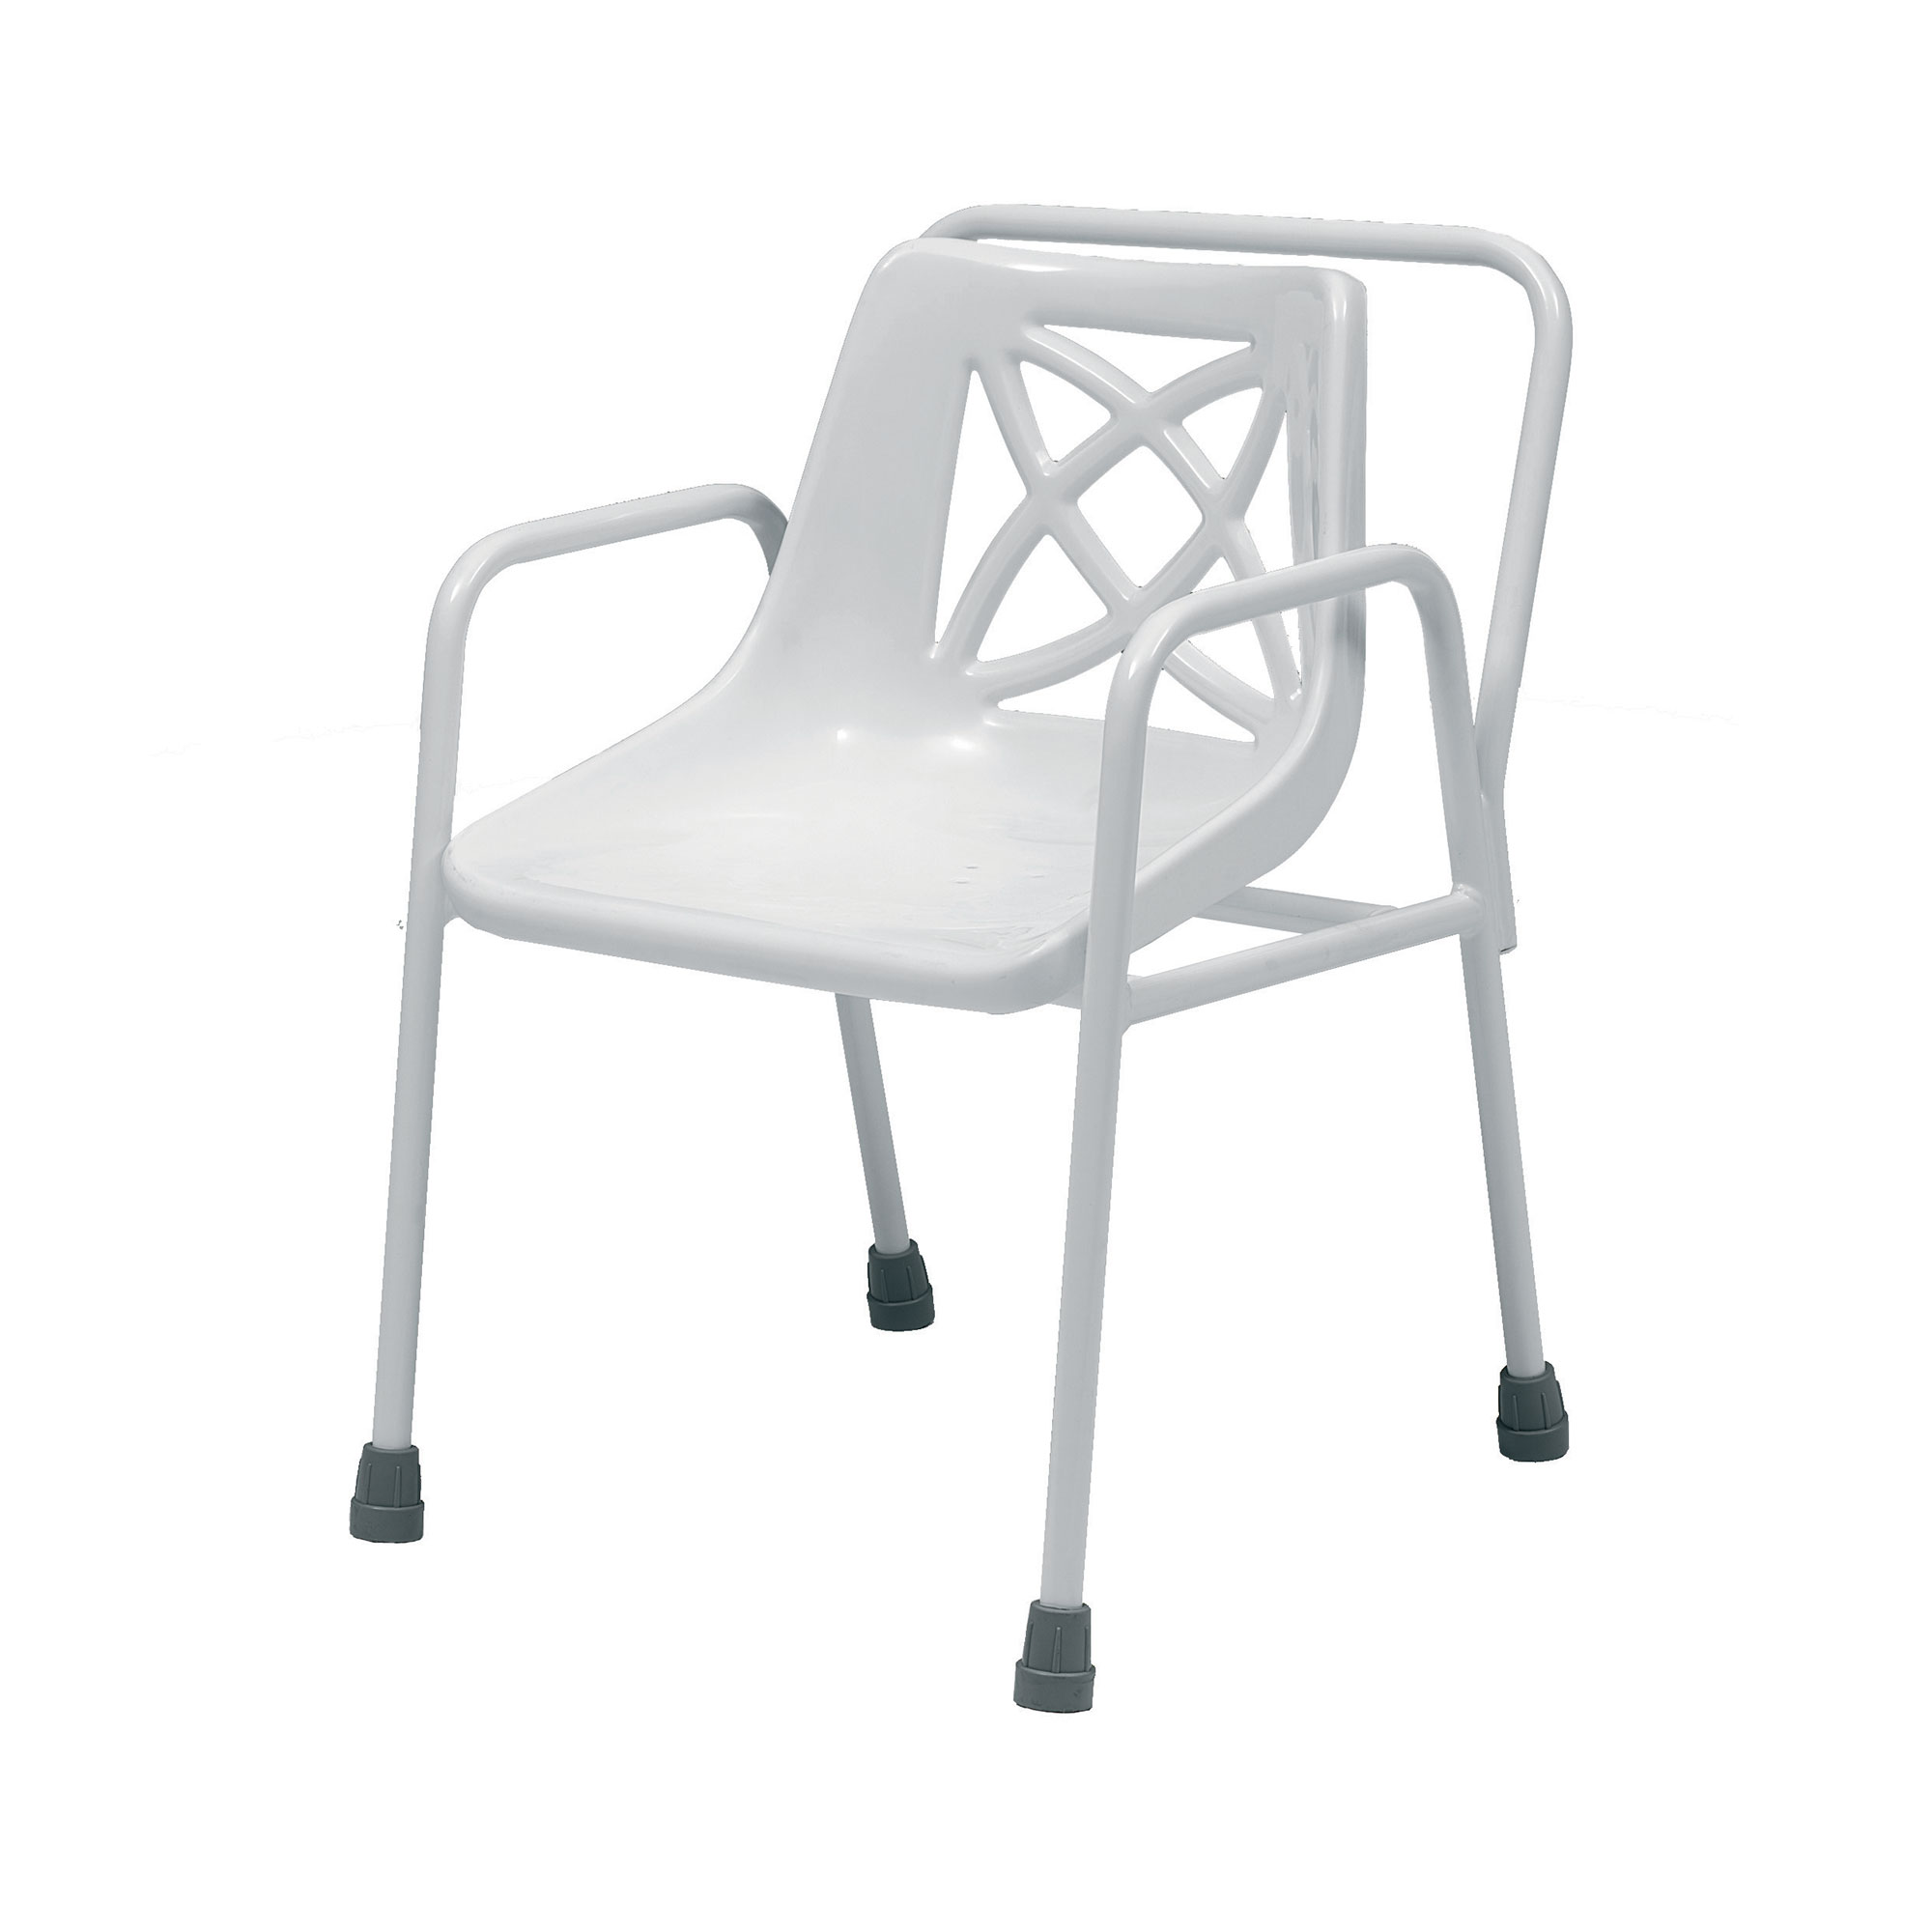 arms premium and index chair medical series with back drive chairwith shower